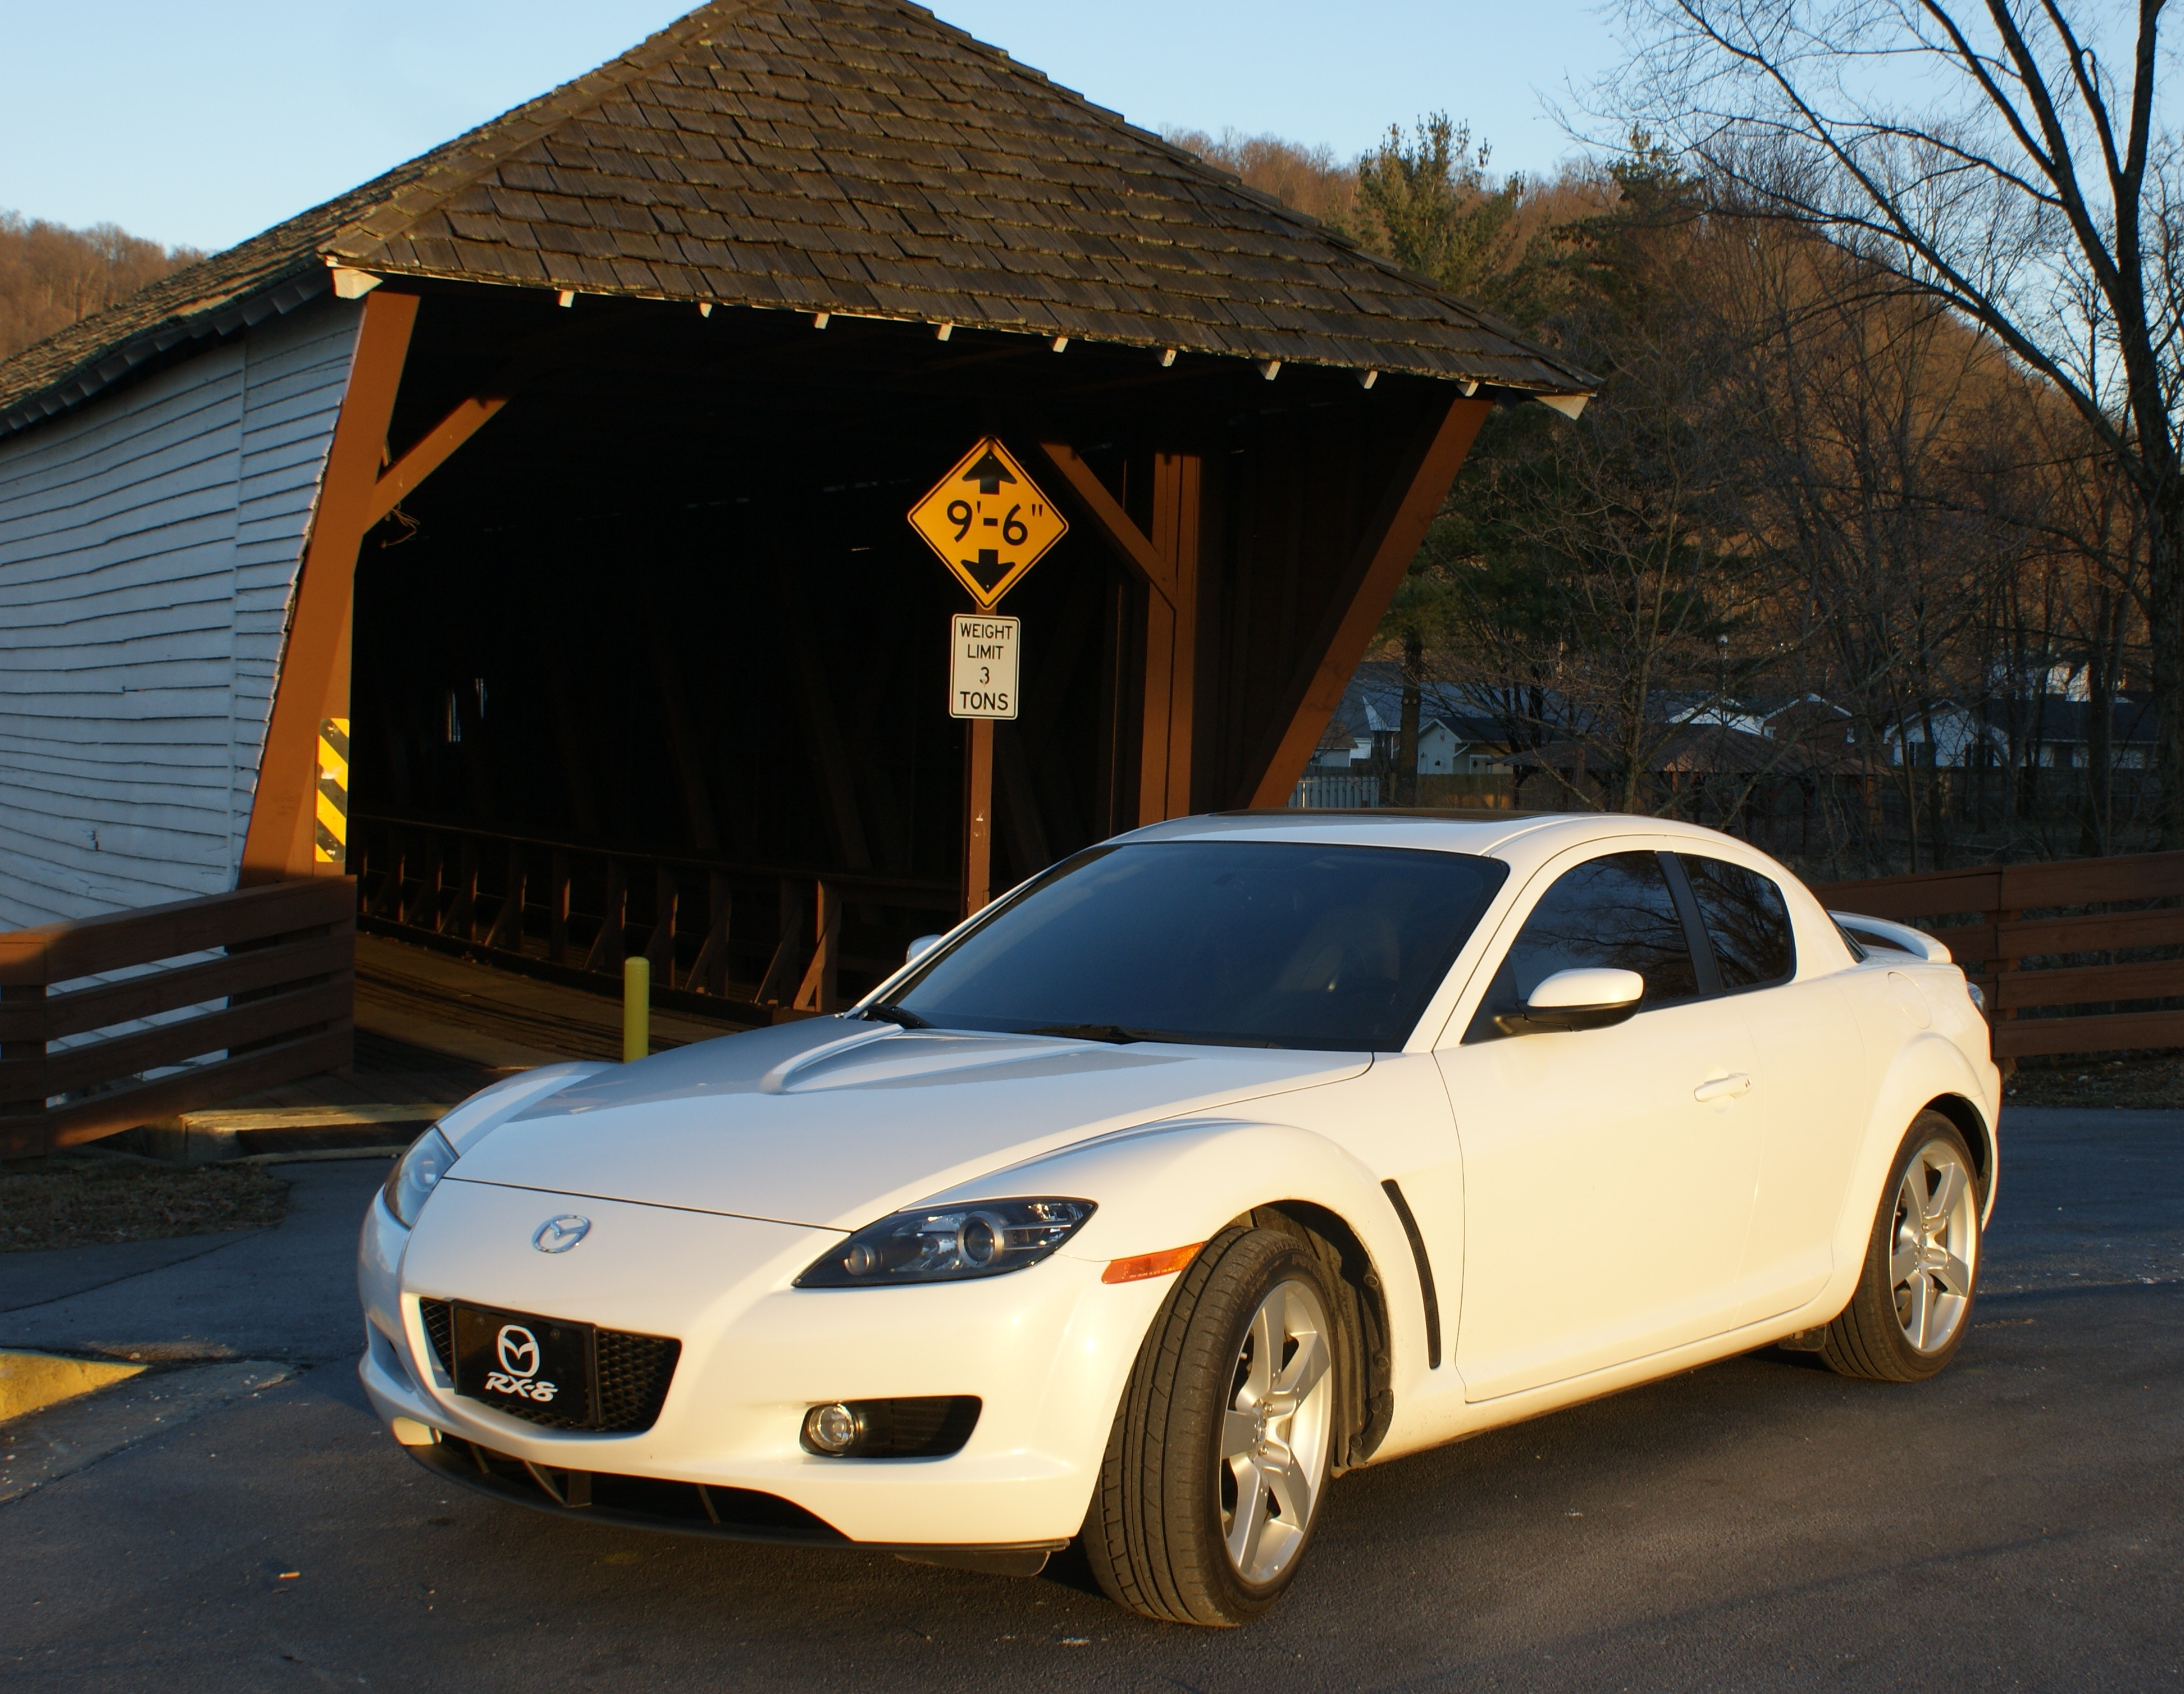 sierralst210 2007 mazda rx-8 specs, photos, modification info at